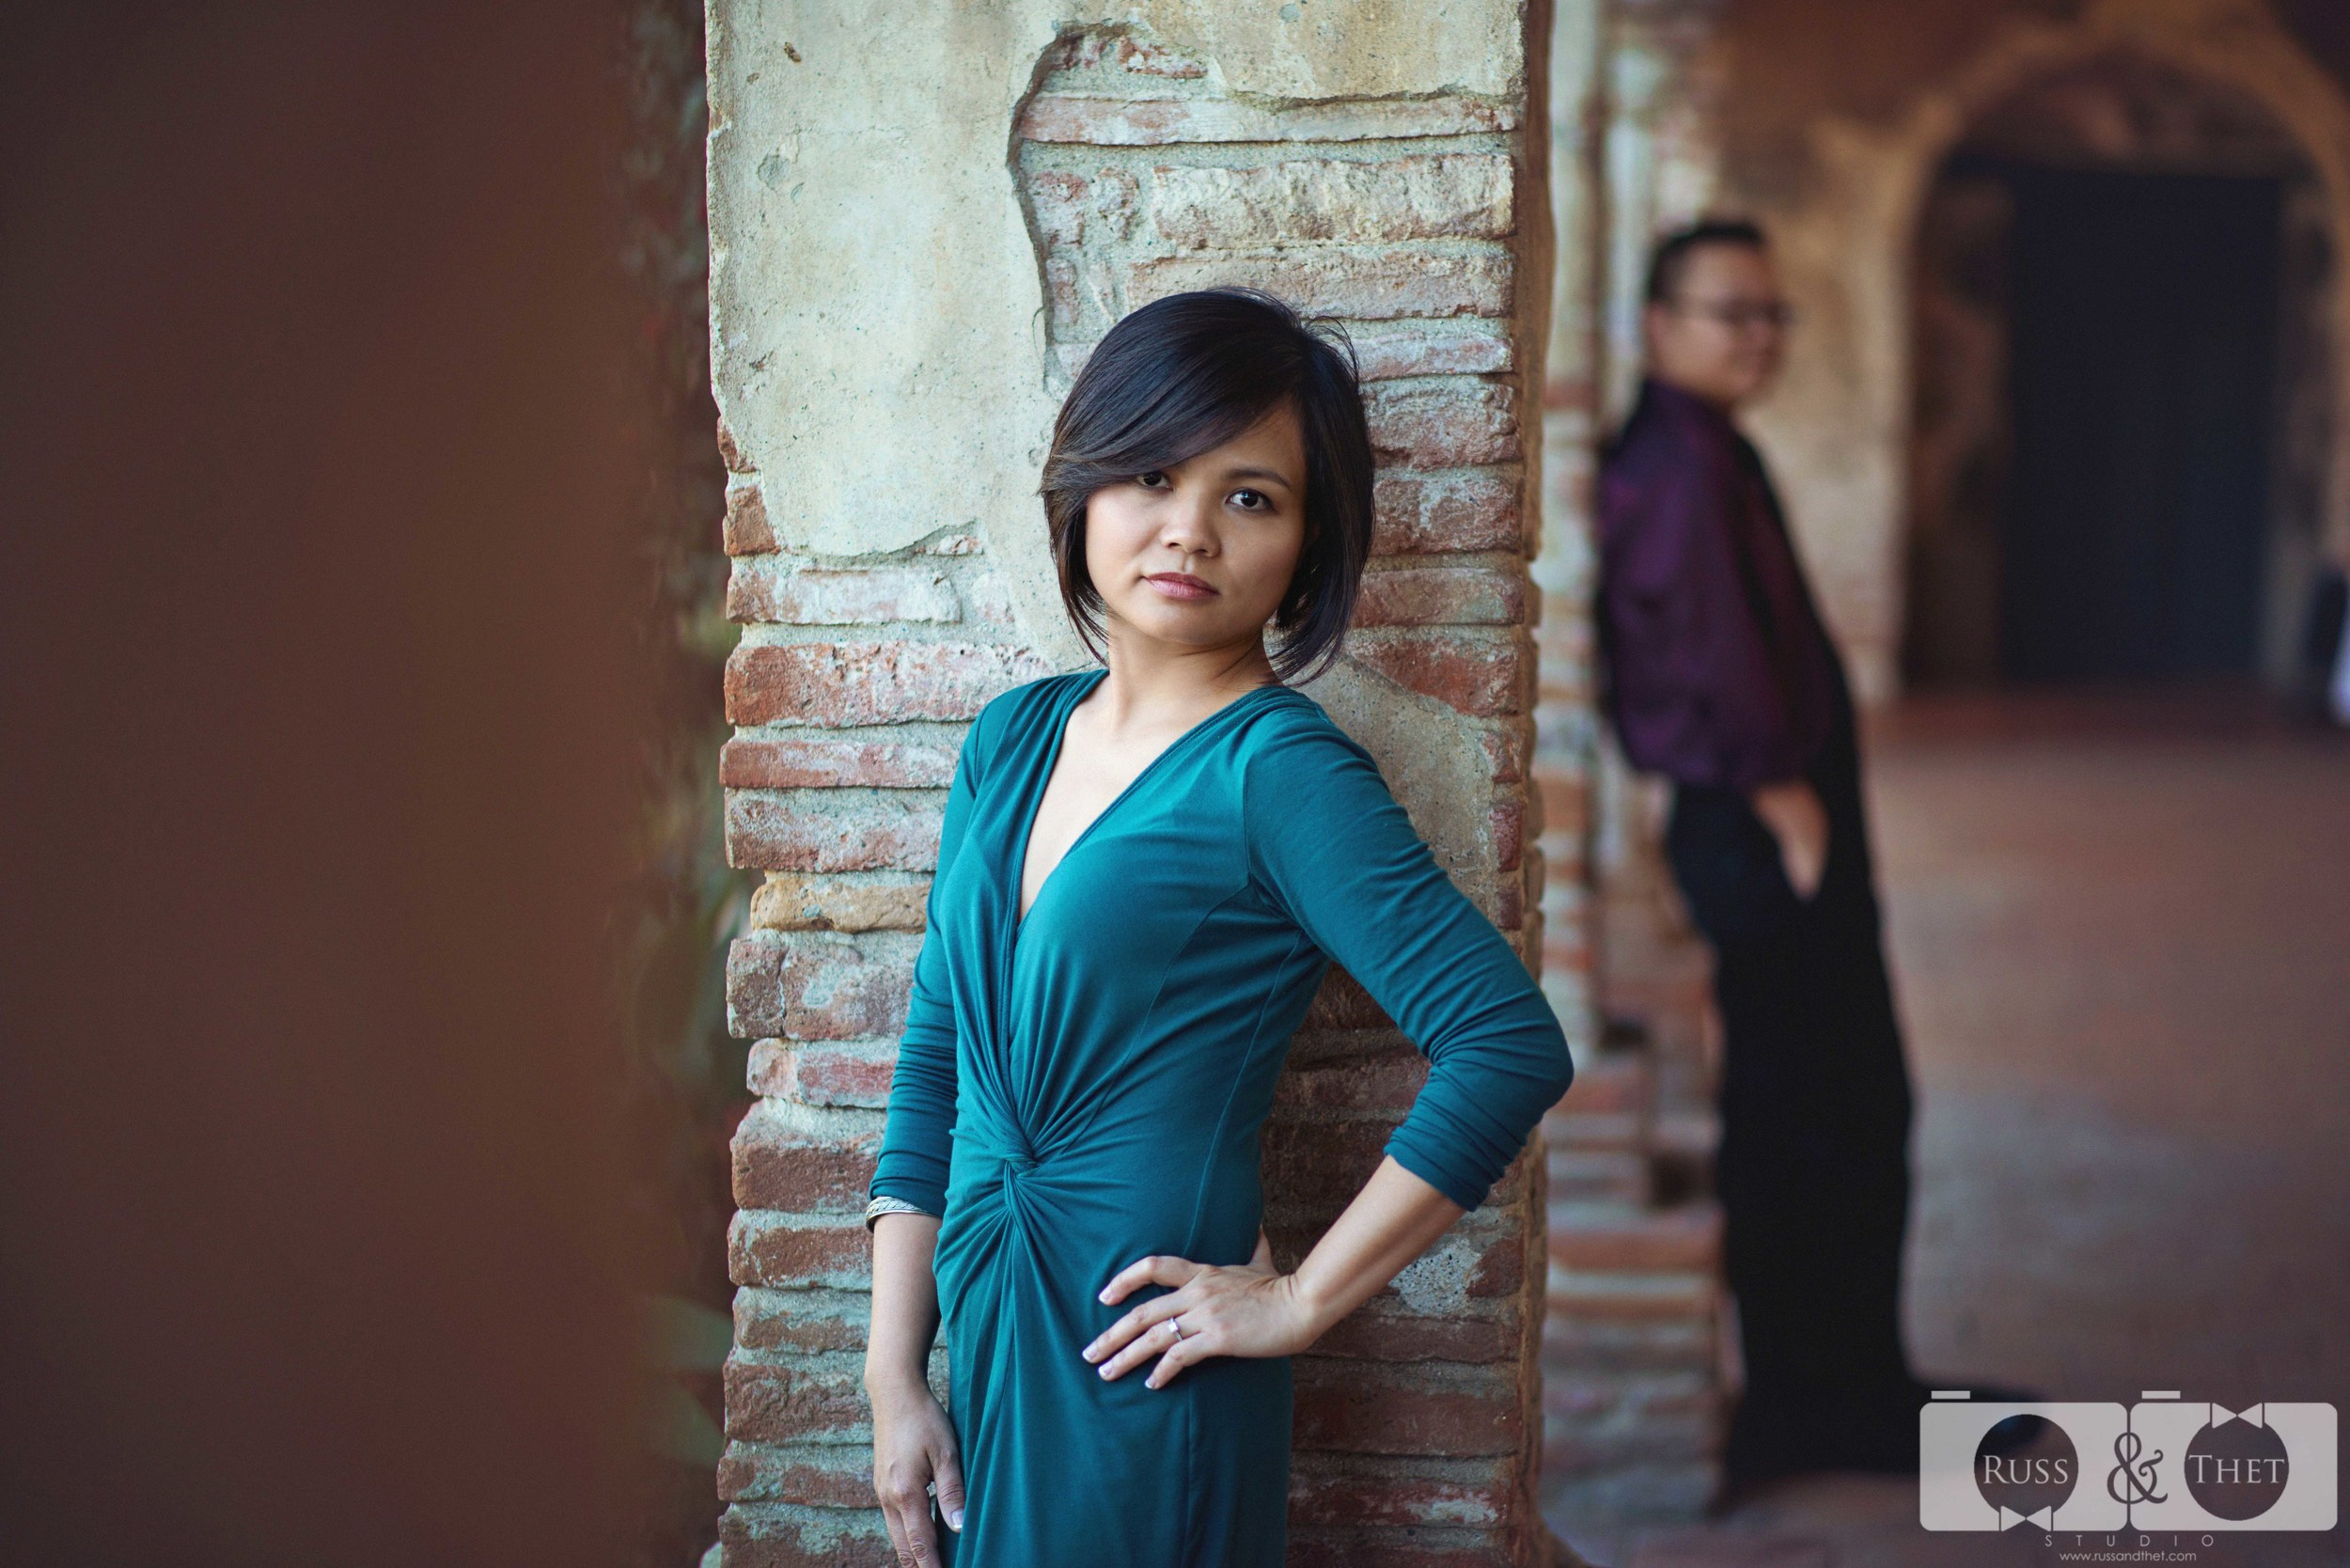 Mission-san-juan-capistrano-engagement-session-25.JPG